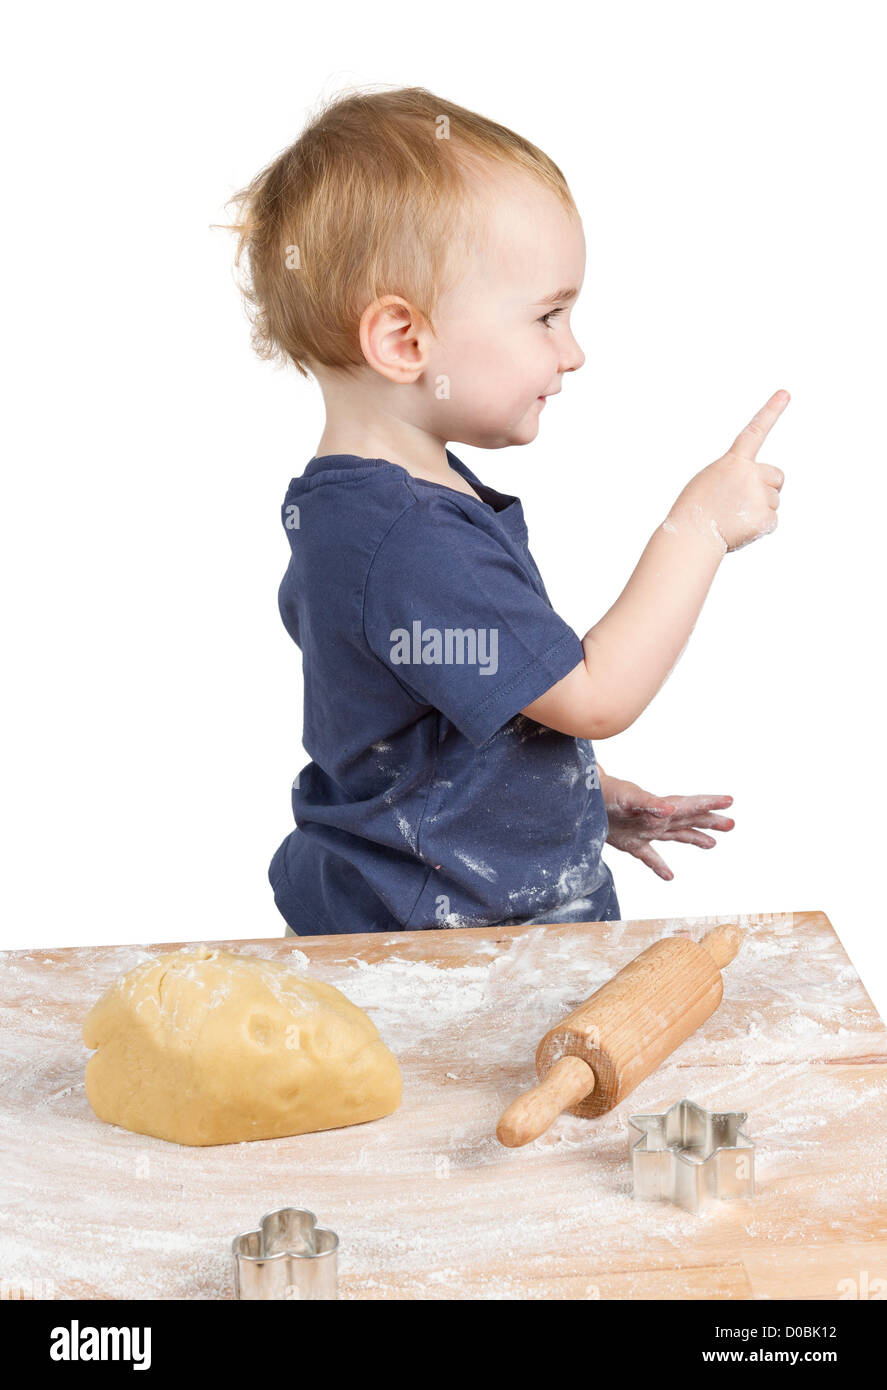 young child making cookies pointing at side - Stock Image